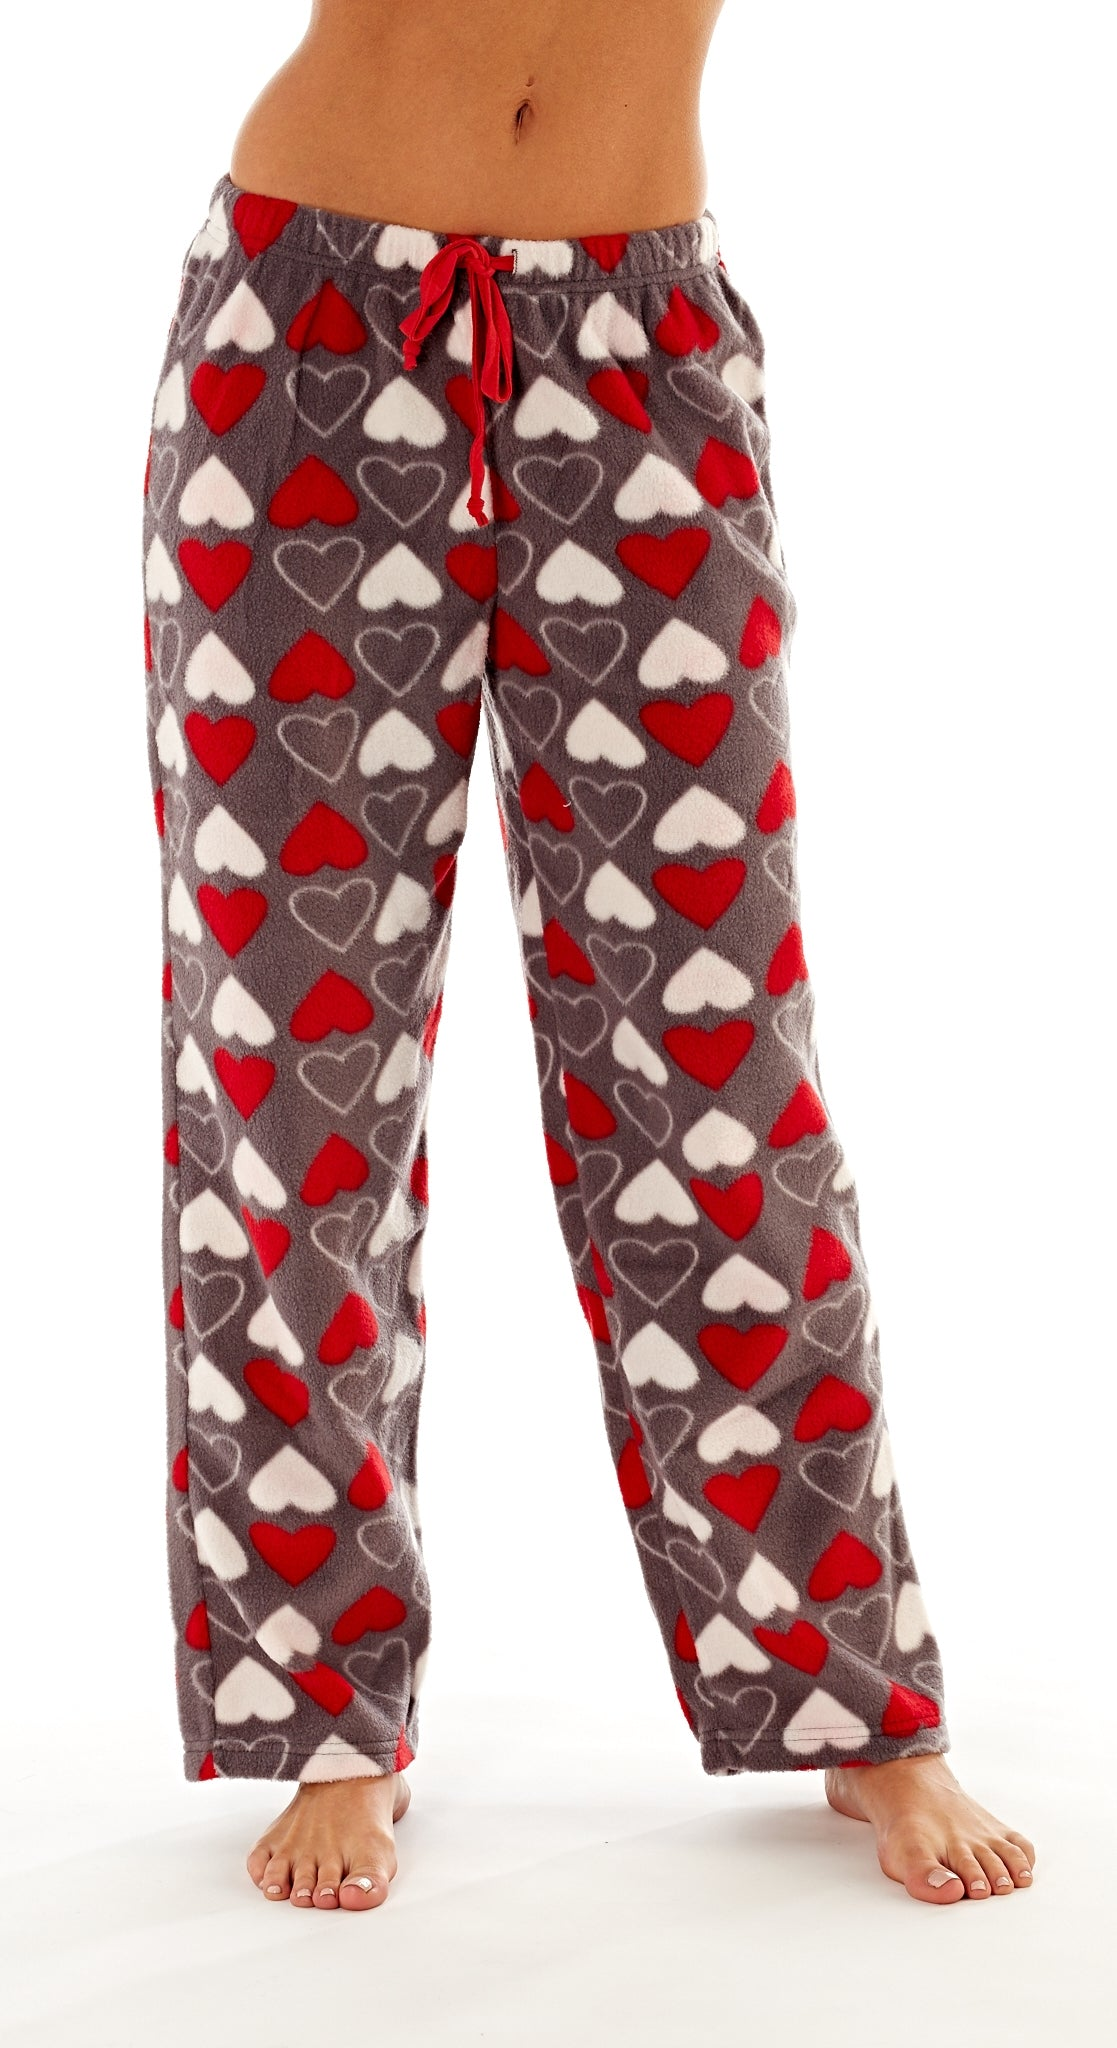 Octave Ladies Loungewear Pants Pyjama Bottoms - Hearts